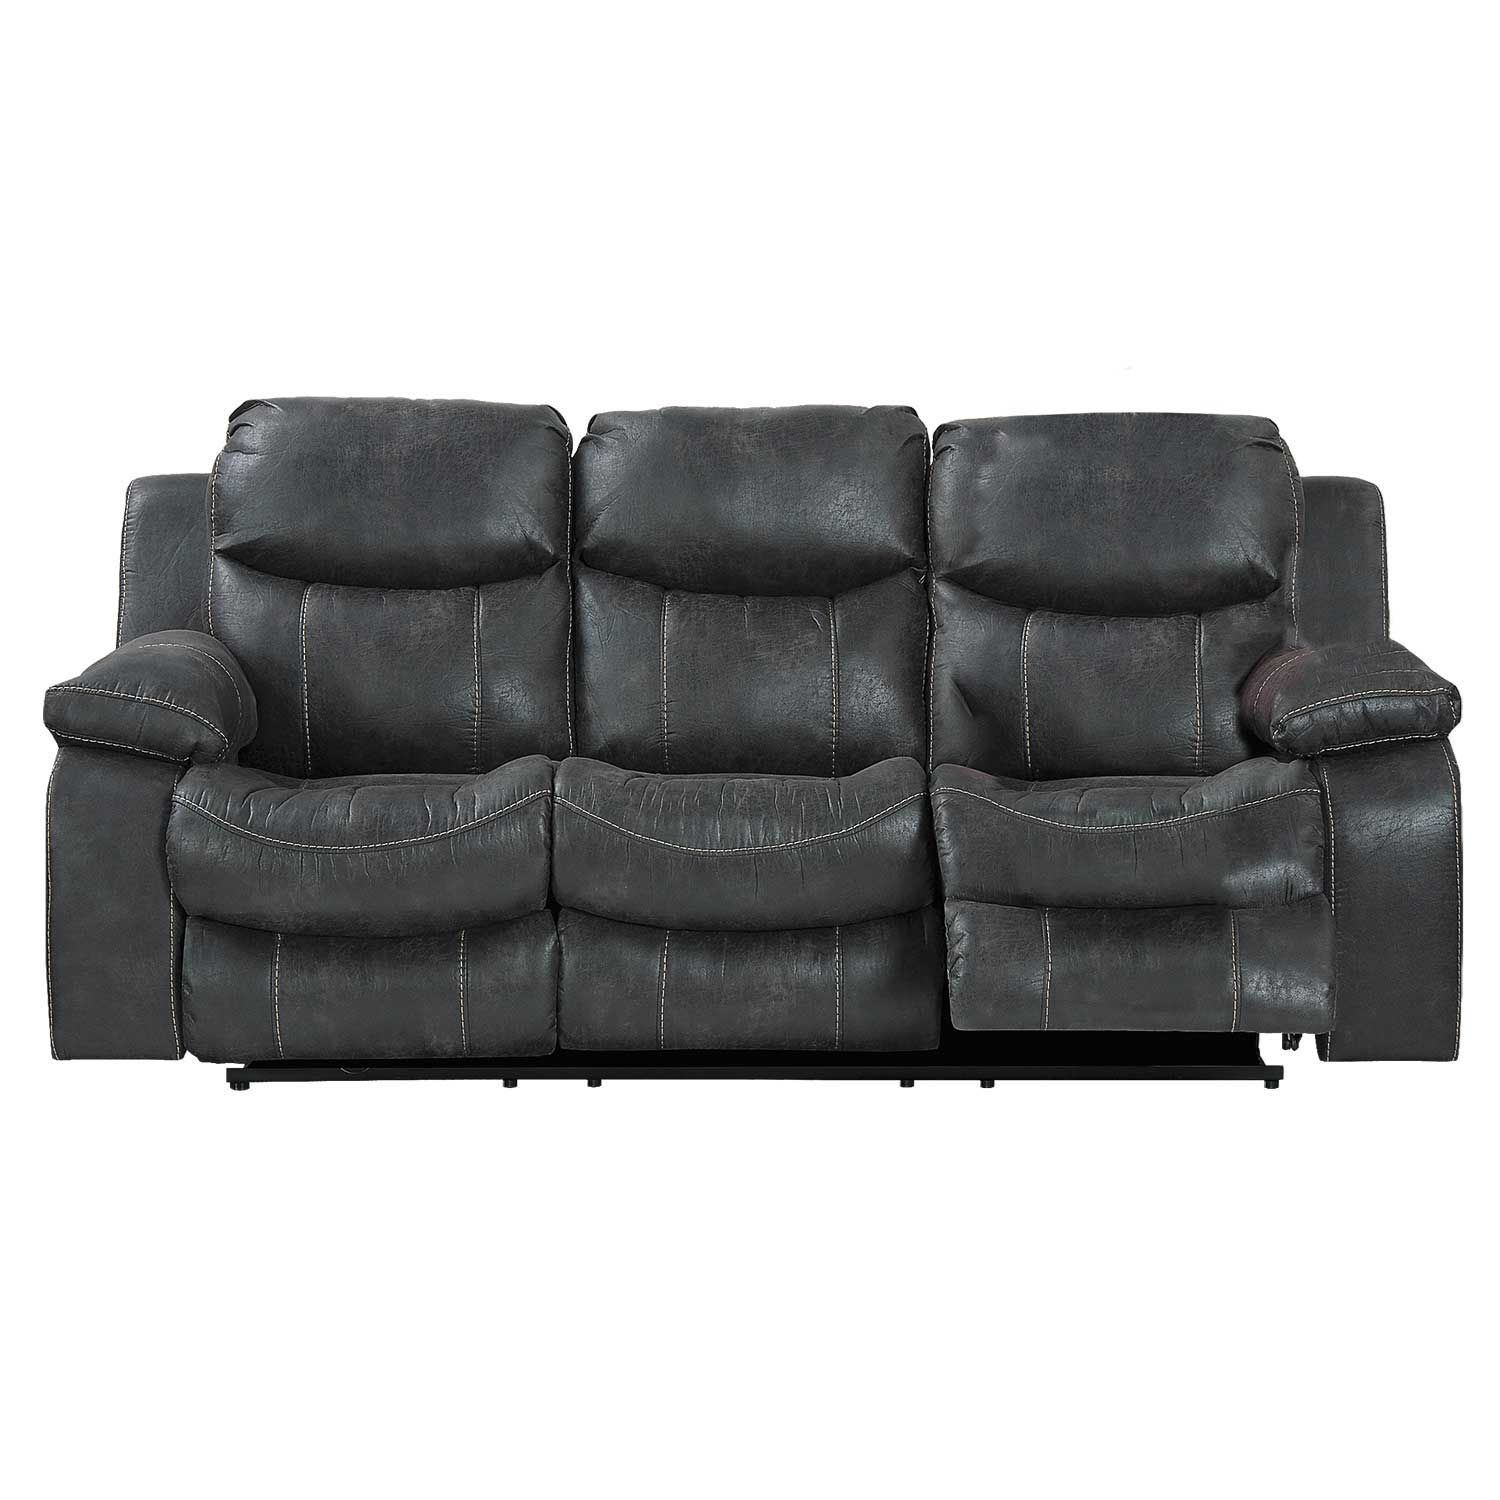 Outstanding Steel Reclining Sofa Pdpeps Interior Chair Design Pdpepsorg